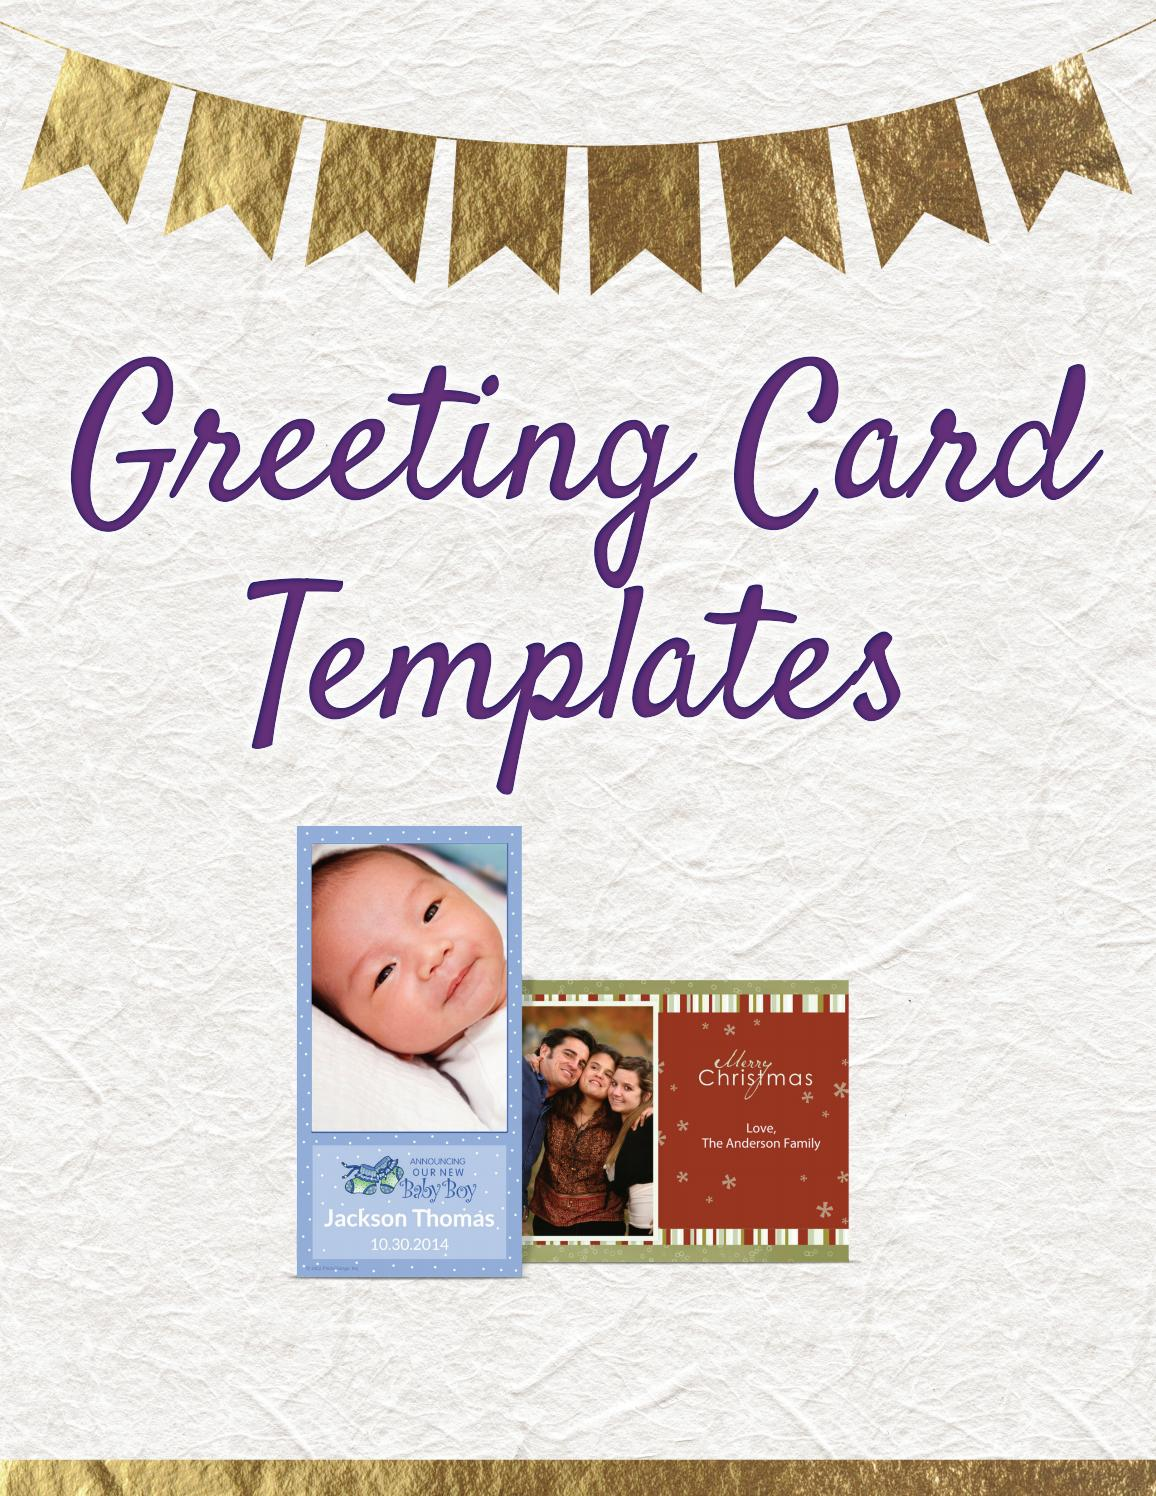 Greeting Card Templates By Digital Event Pics Issuu